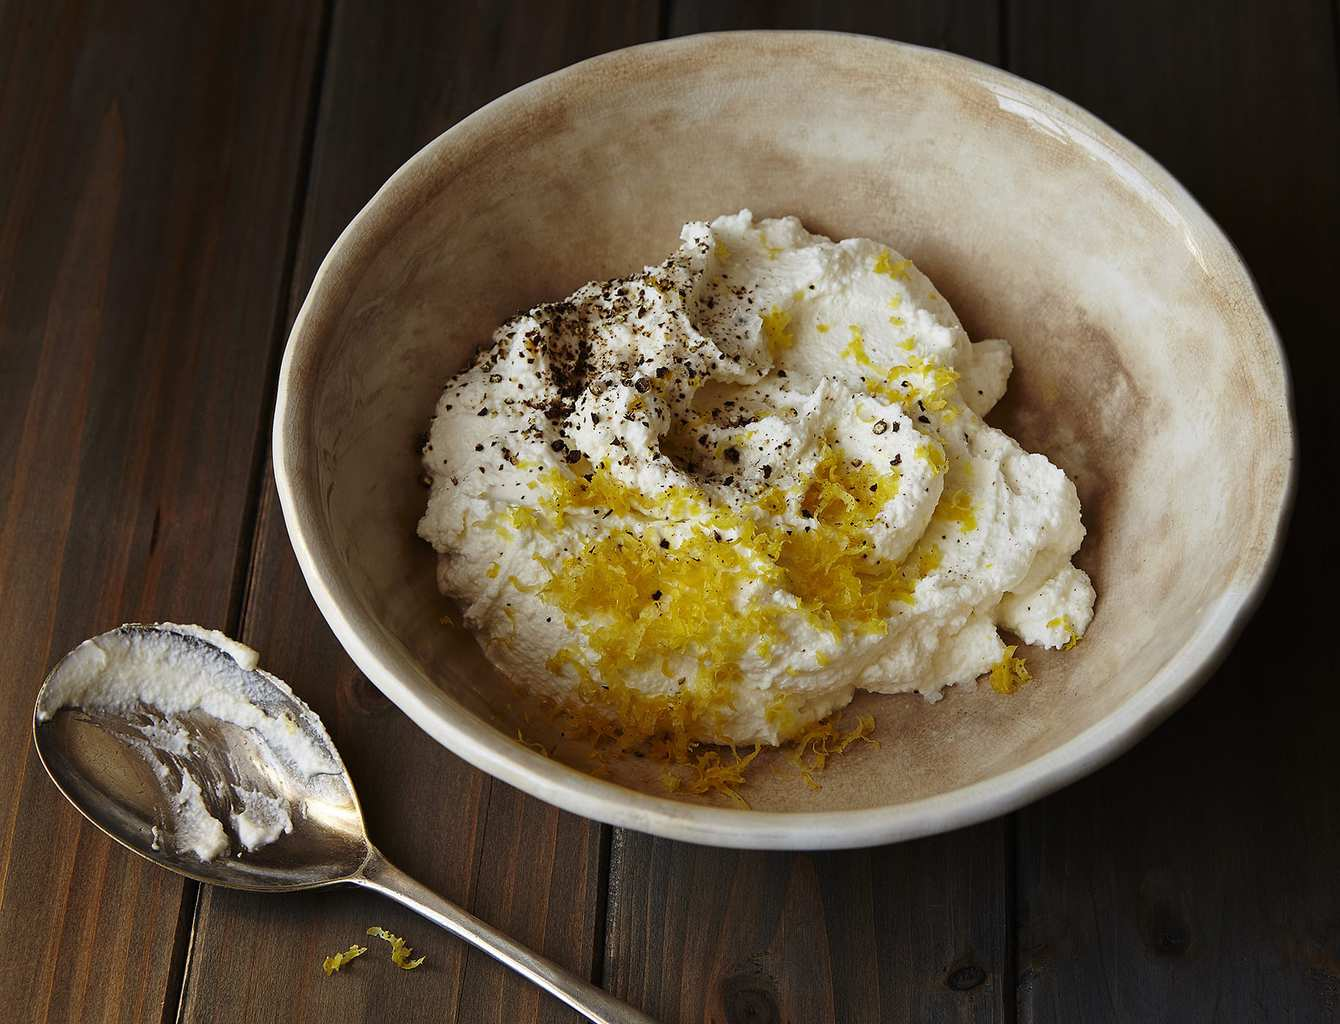 Ricotta cream with ingredients in rustic bowl with spoon on brown background